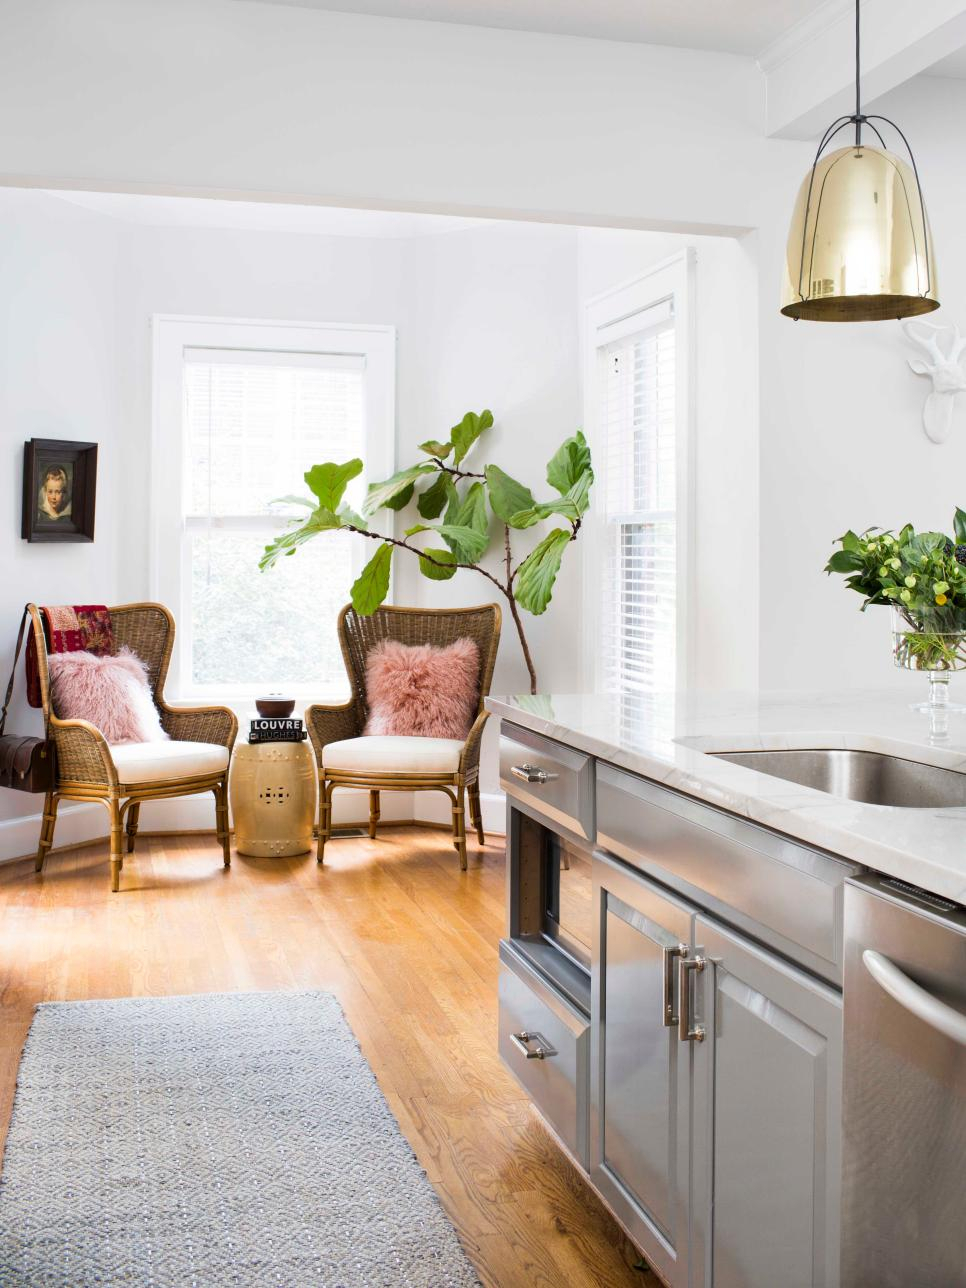 Sitting Area With Wicker Chairs And Pink Faux Fur Pillows | Hgtv For Engelhardt Ceramic Garden Stools (View 15 of 25)